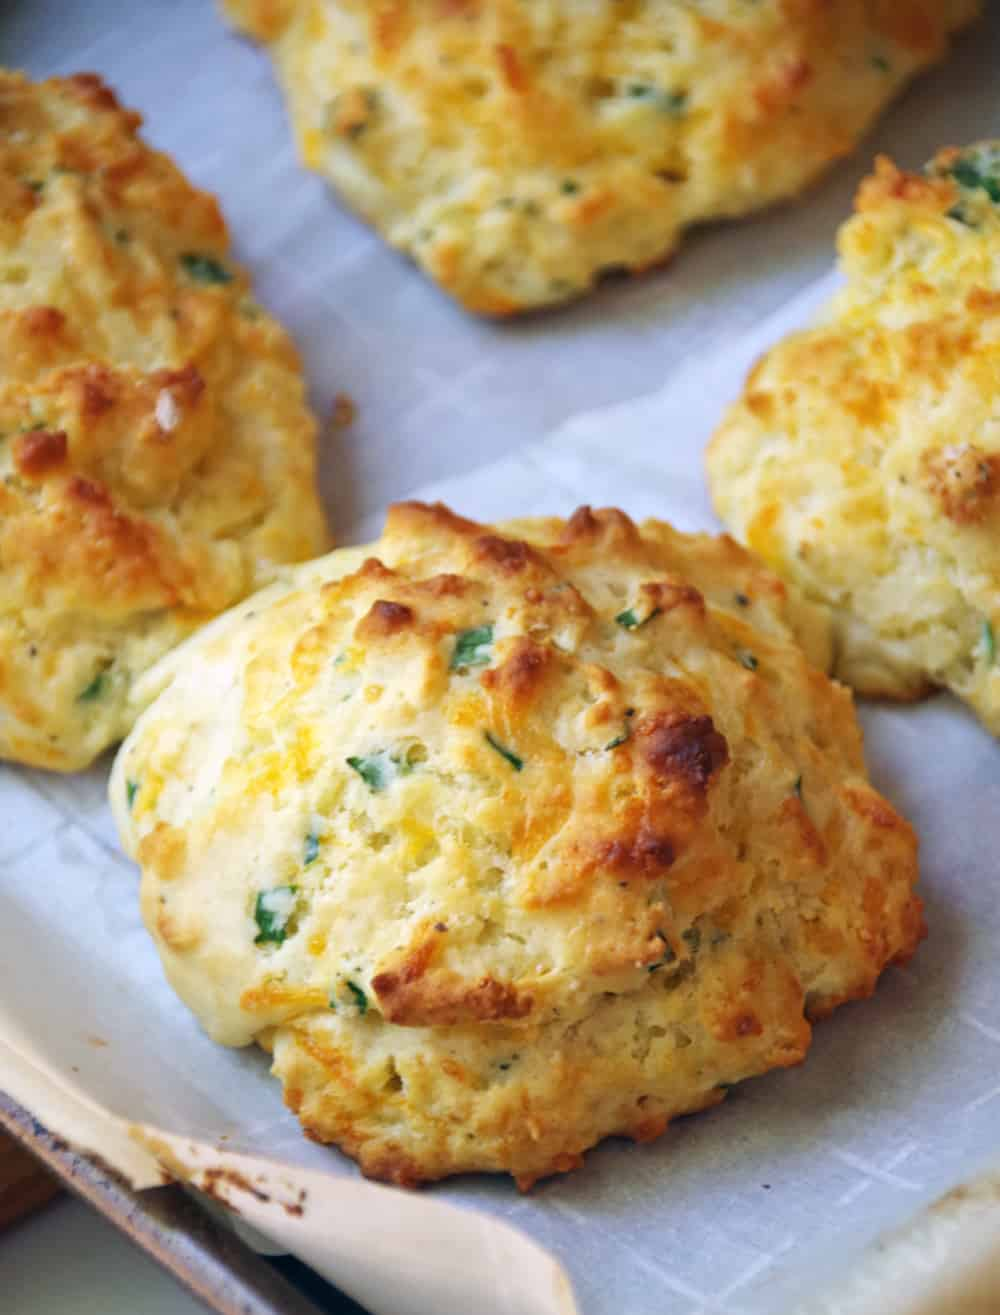 Homemade cheddar and chive buttermilk biscuits